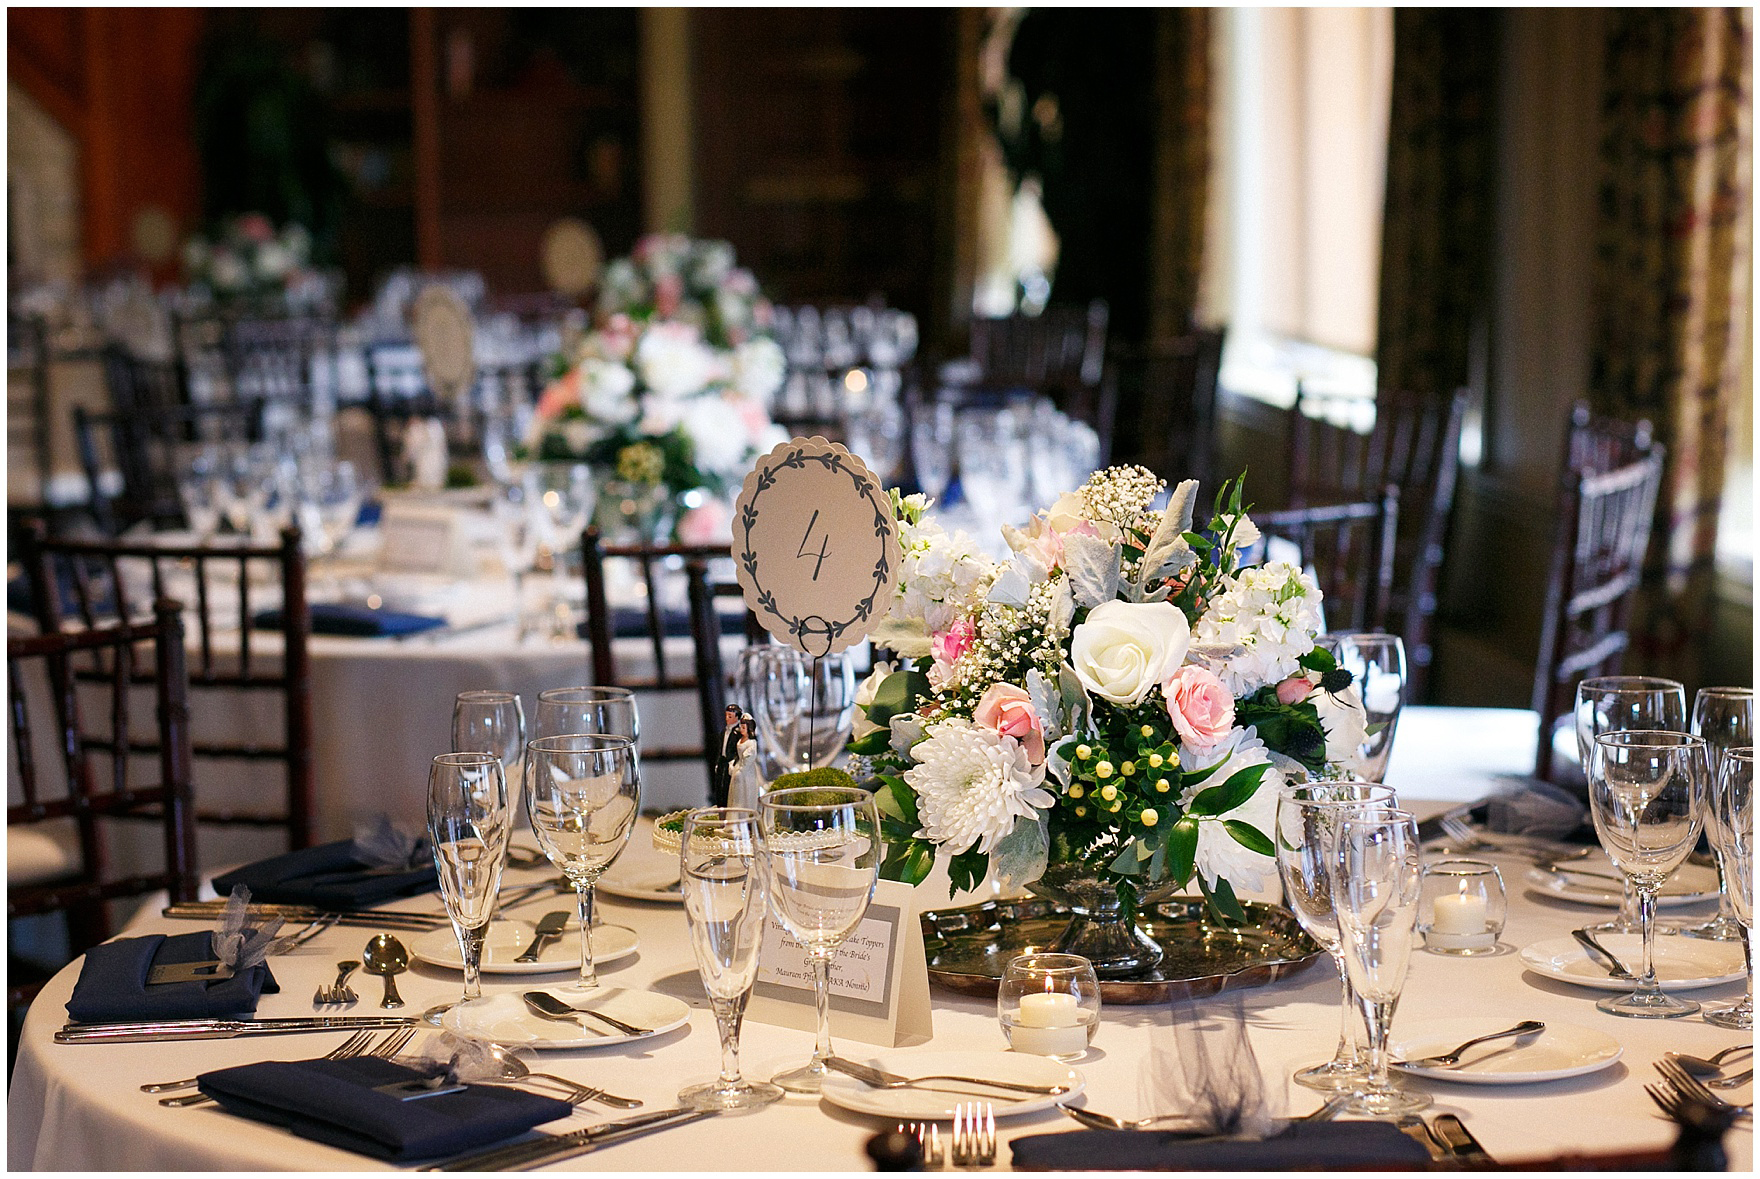 Centerpieces by Countryside Flower Shop a Biltmore Country Club Barrington wedding.